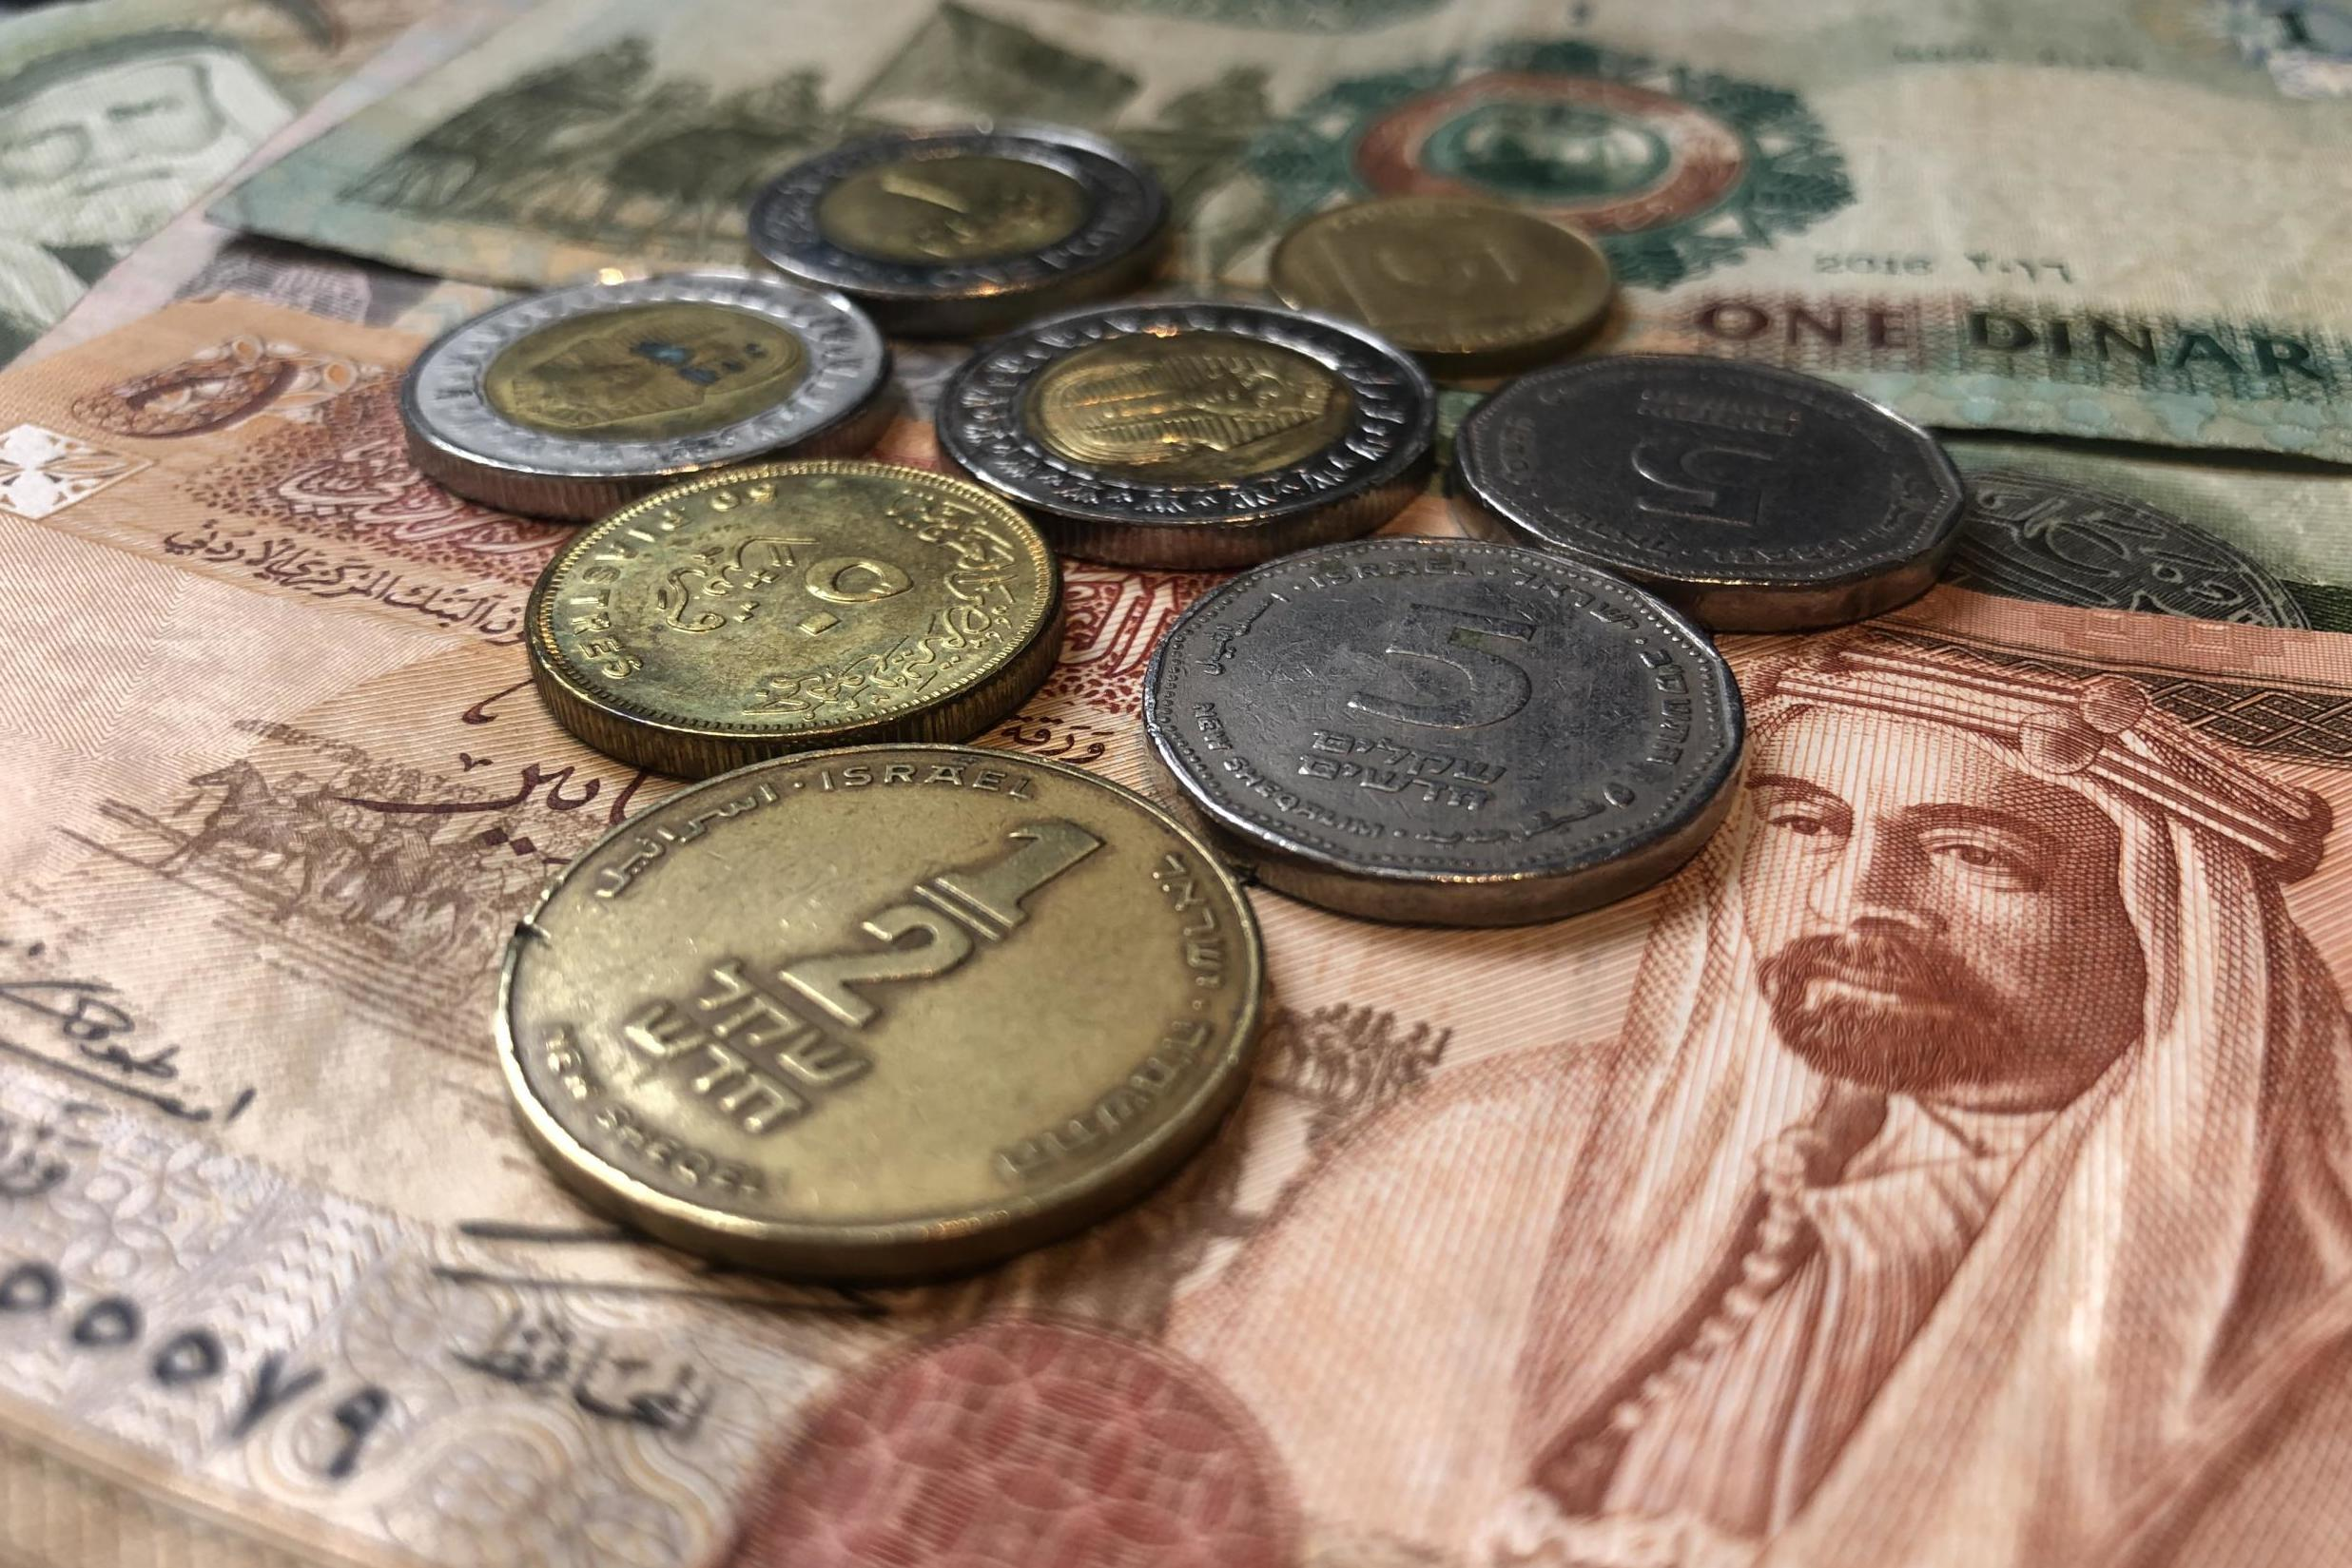 How to organise holiday money in an age of pandemics